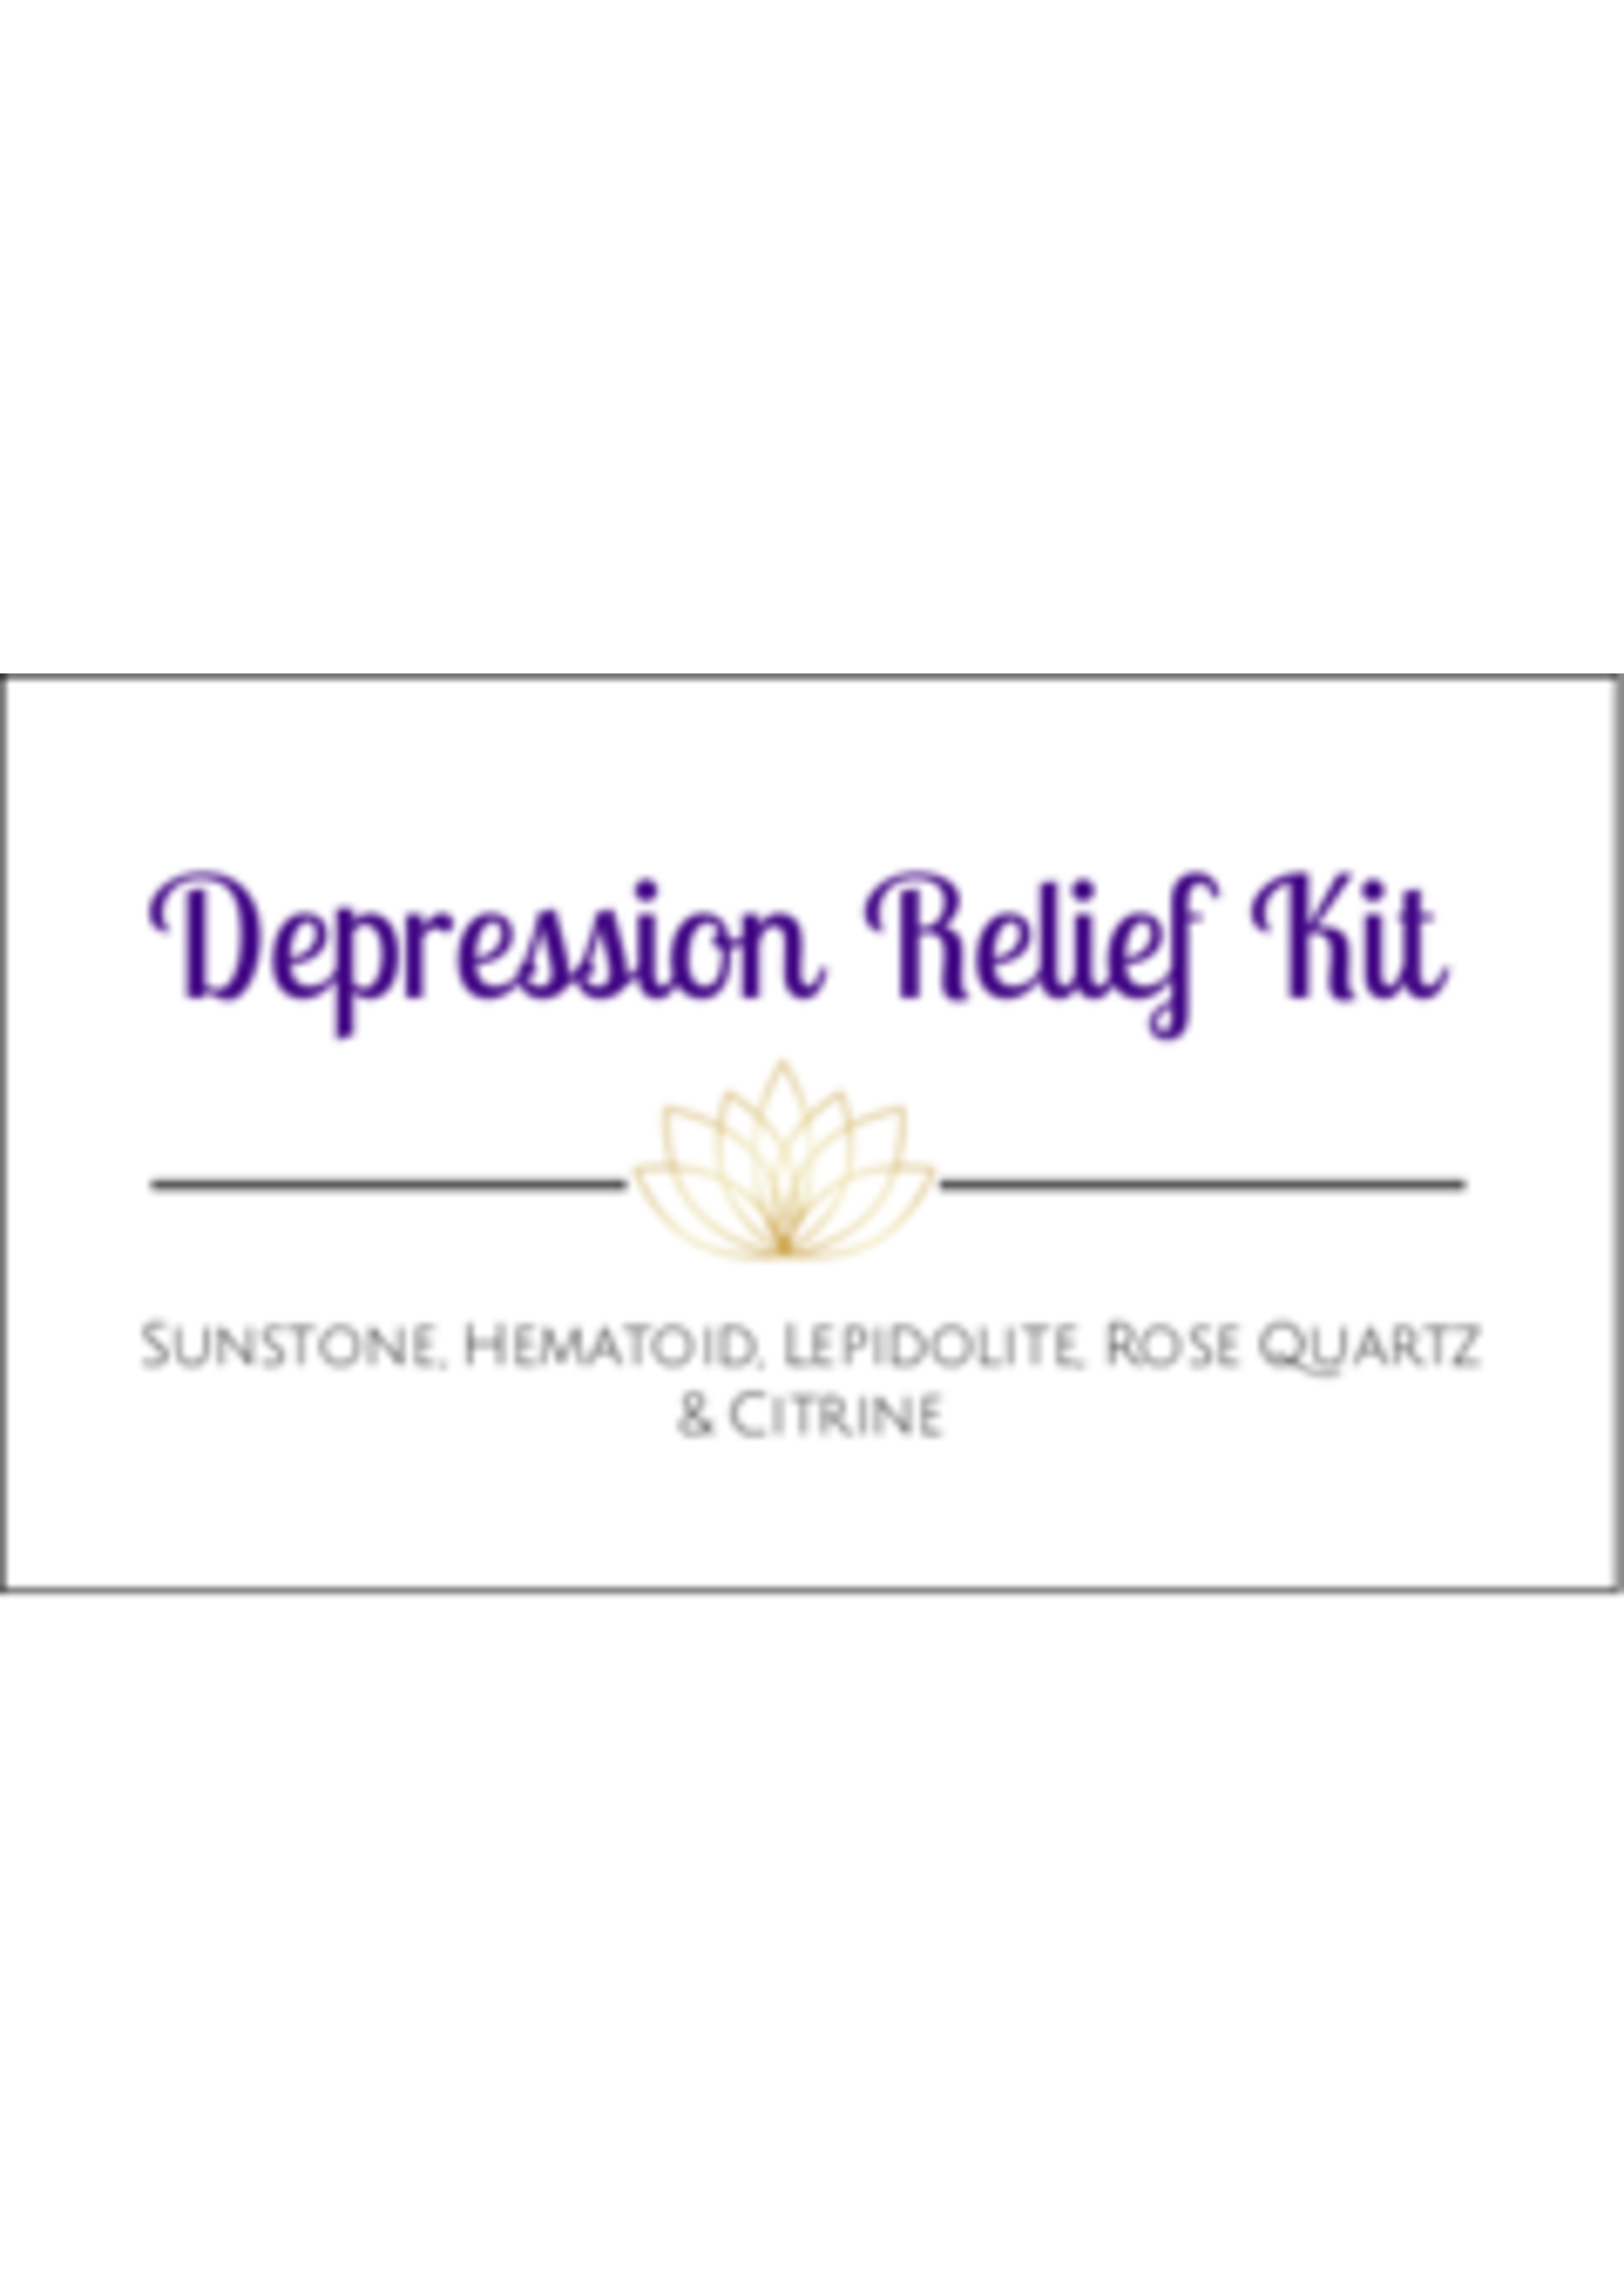 Depression Relief Crystal Kit Cards - Box of 100